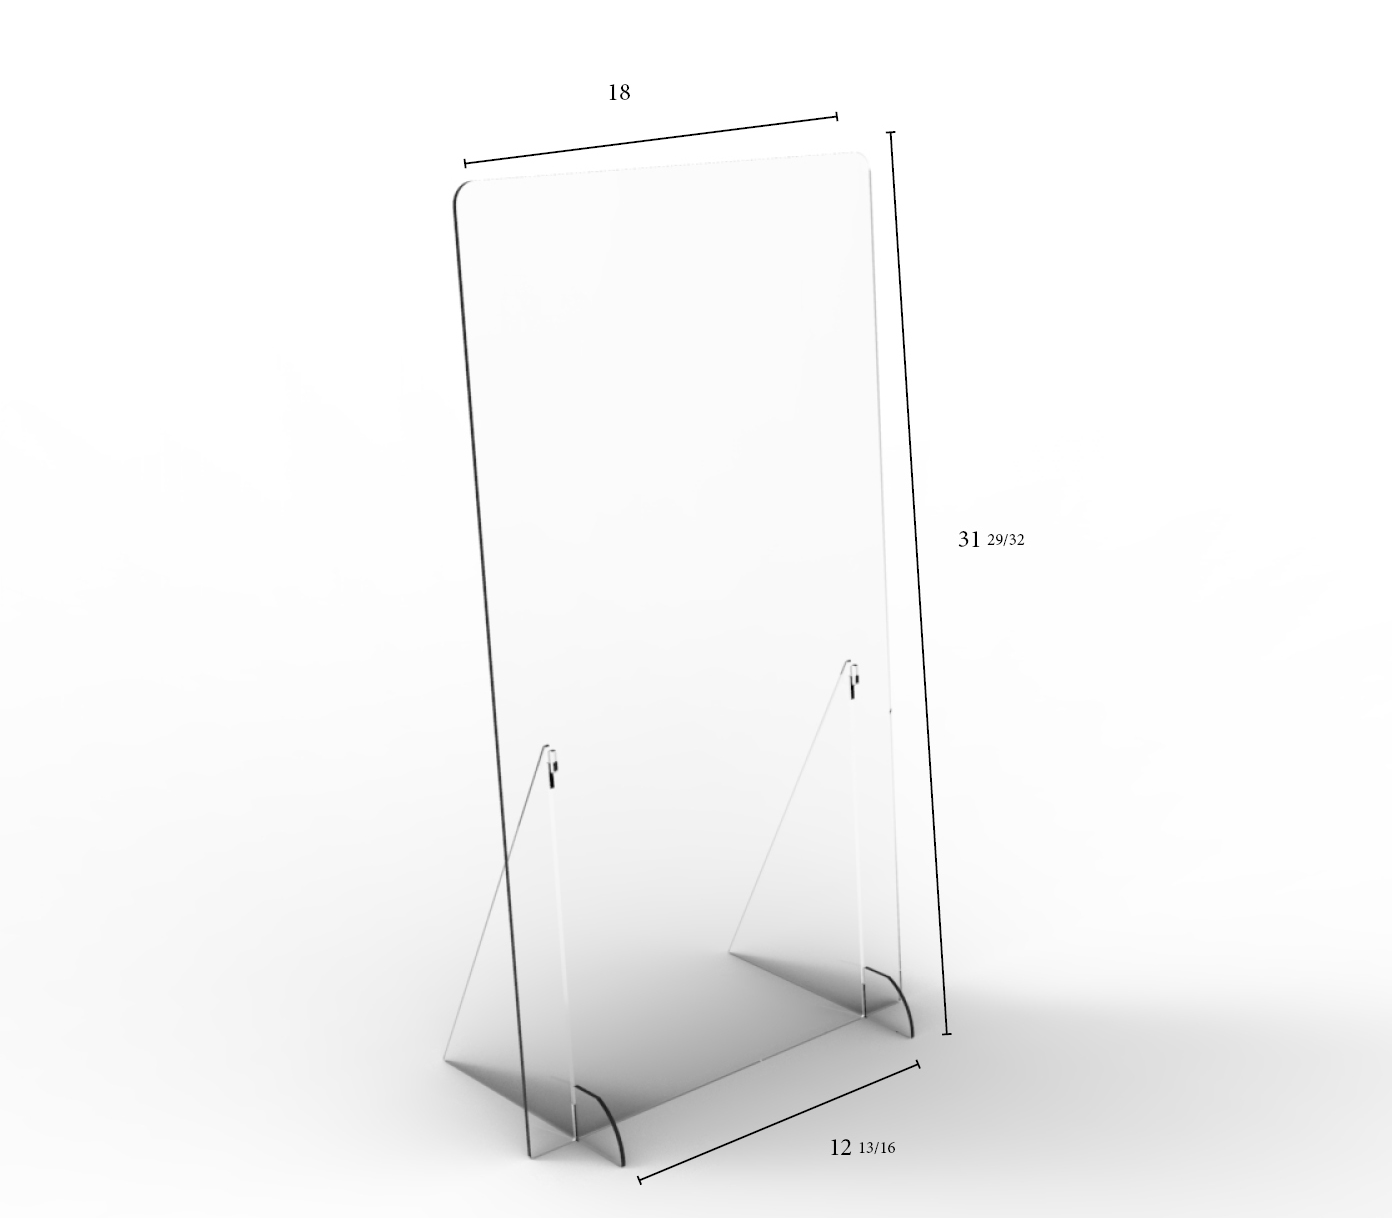 "Solid Angled Clear Protective Shield - 18"" W x 32"" H 